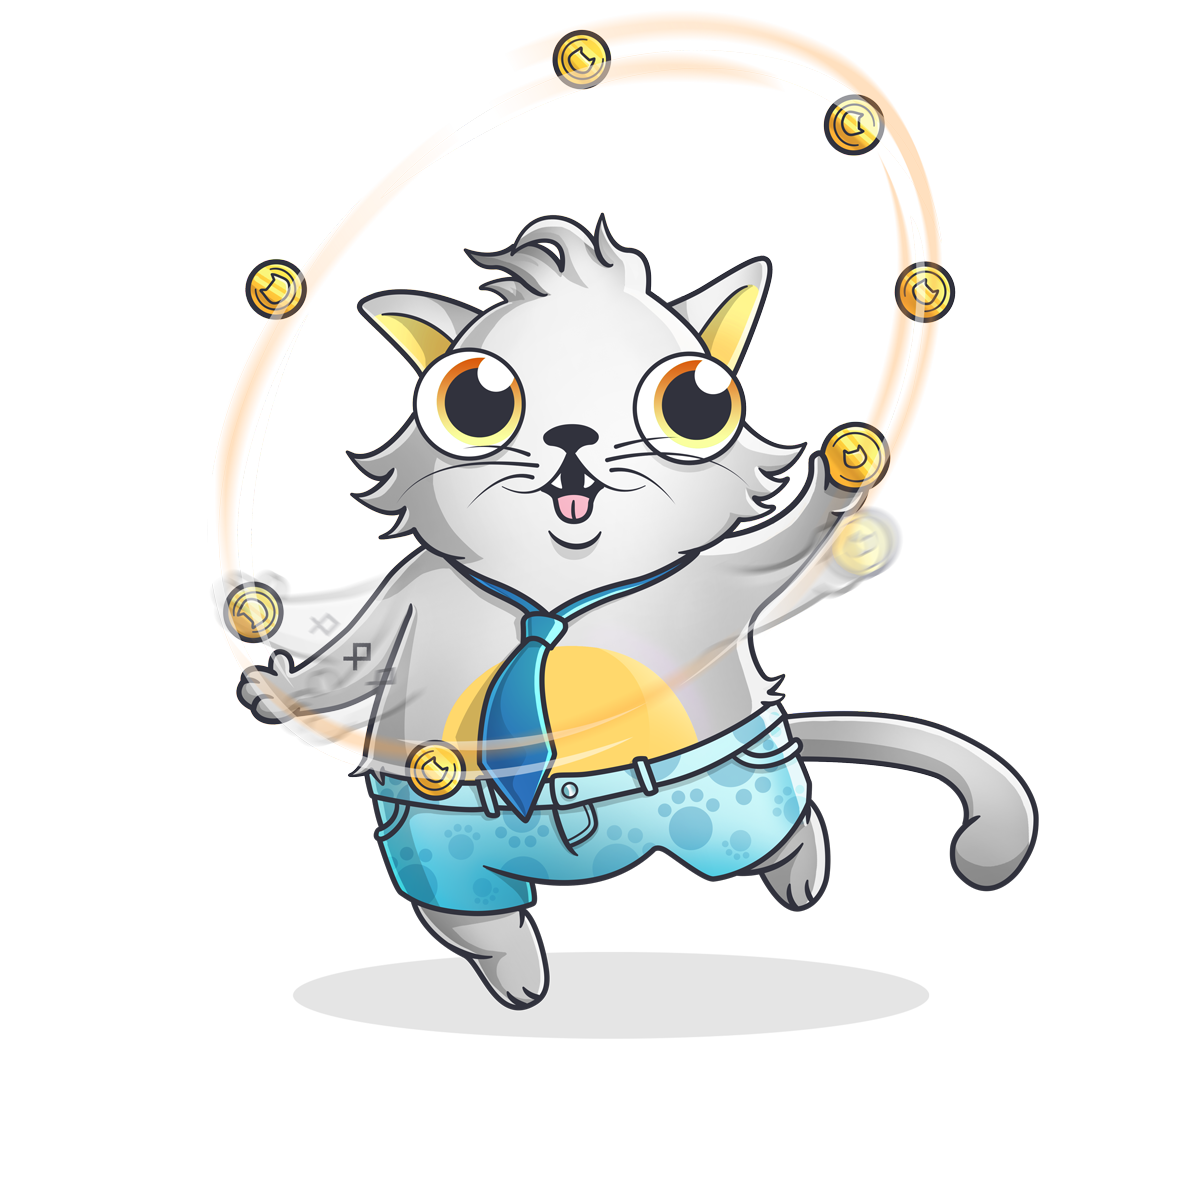 cryptokitty #1137659